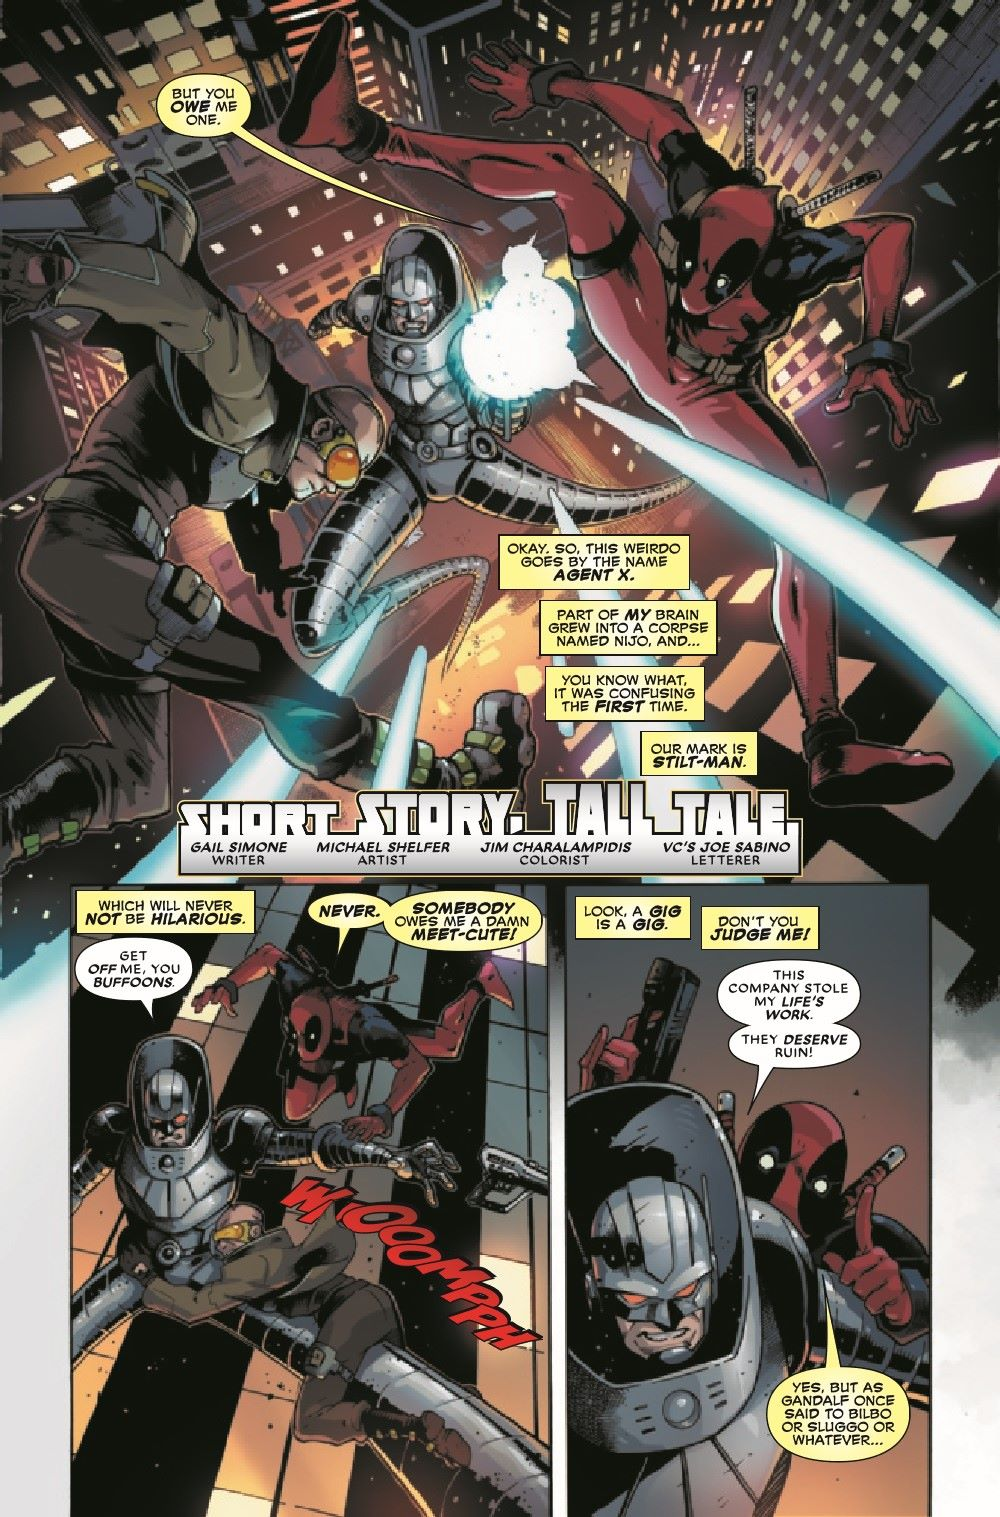 DPOOLNERDY302021001_Preview-8 ComicList Previews: DEADPOOL NERDY 30 #1